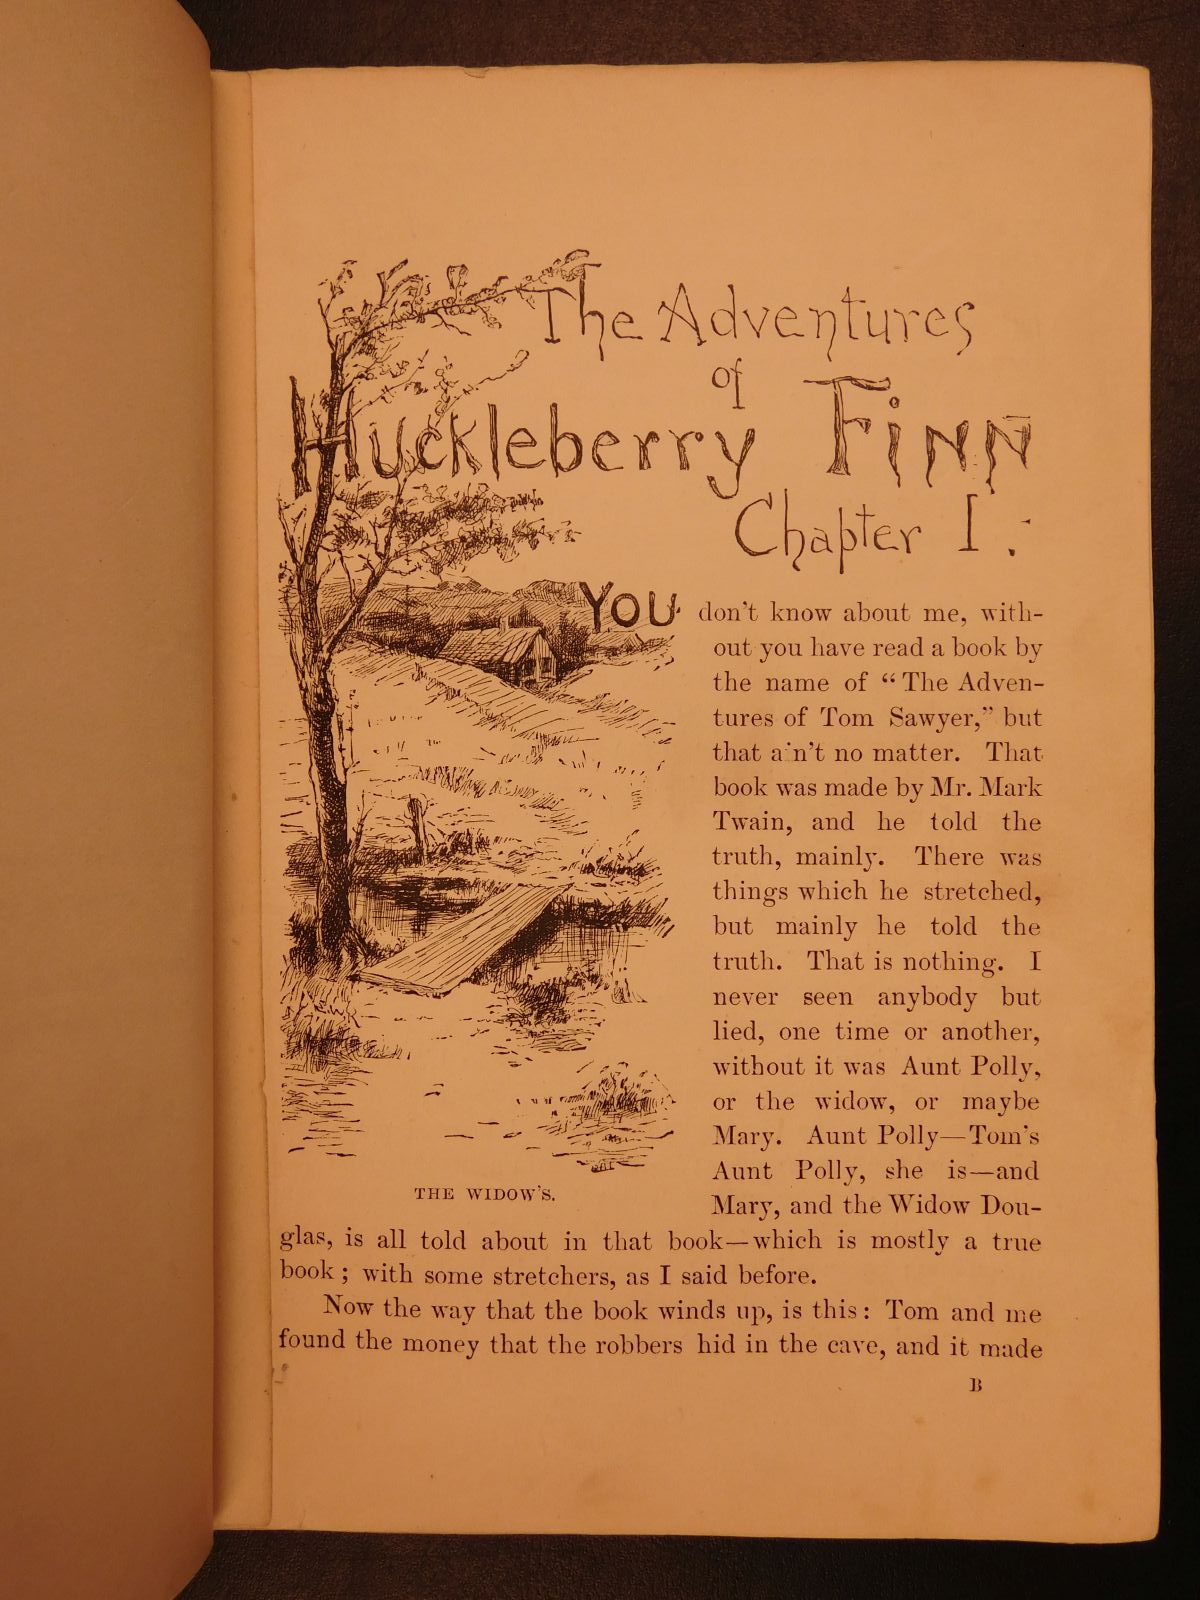 an analysis of the adventures of huckleberry finn a book by mark twain Baltich, byu, 2010 the adventures of huckleberry finn concept analysis literary text: the adventures of huckleberry finn by mark twain (dodd, mead, & company) summary ♦ continuing in the vein of the adventures of tom sawyer, huck finn has run into a large sum of money which he holds in a bank trust.